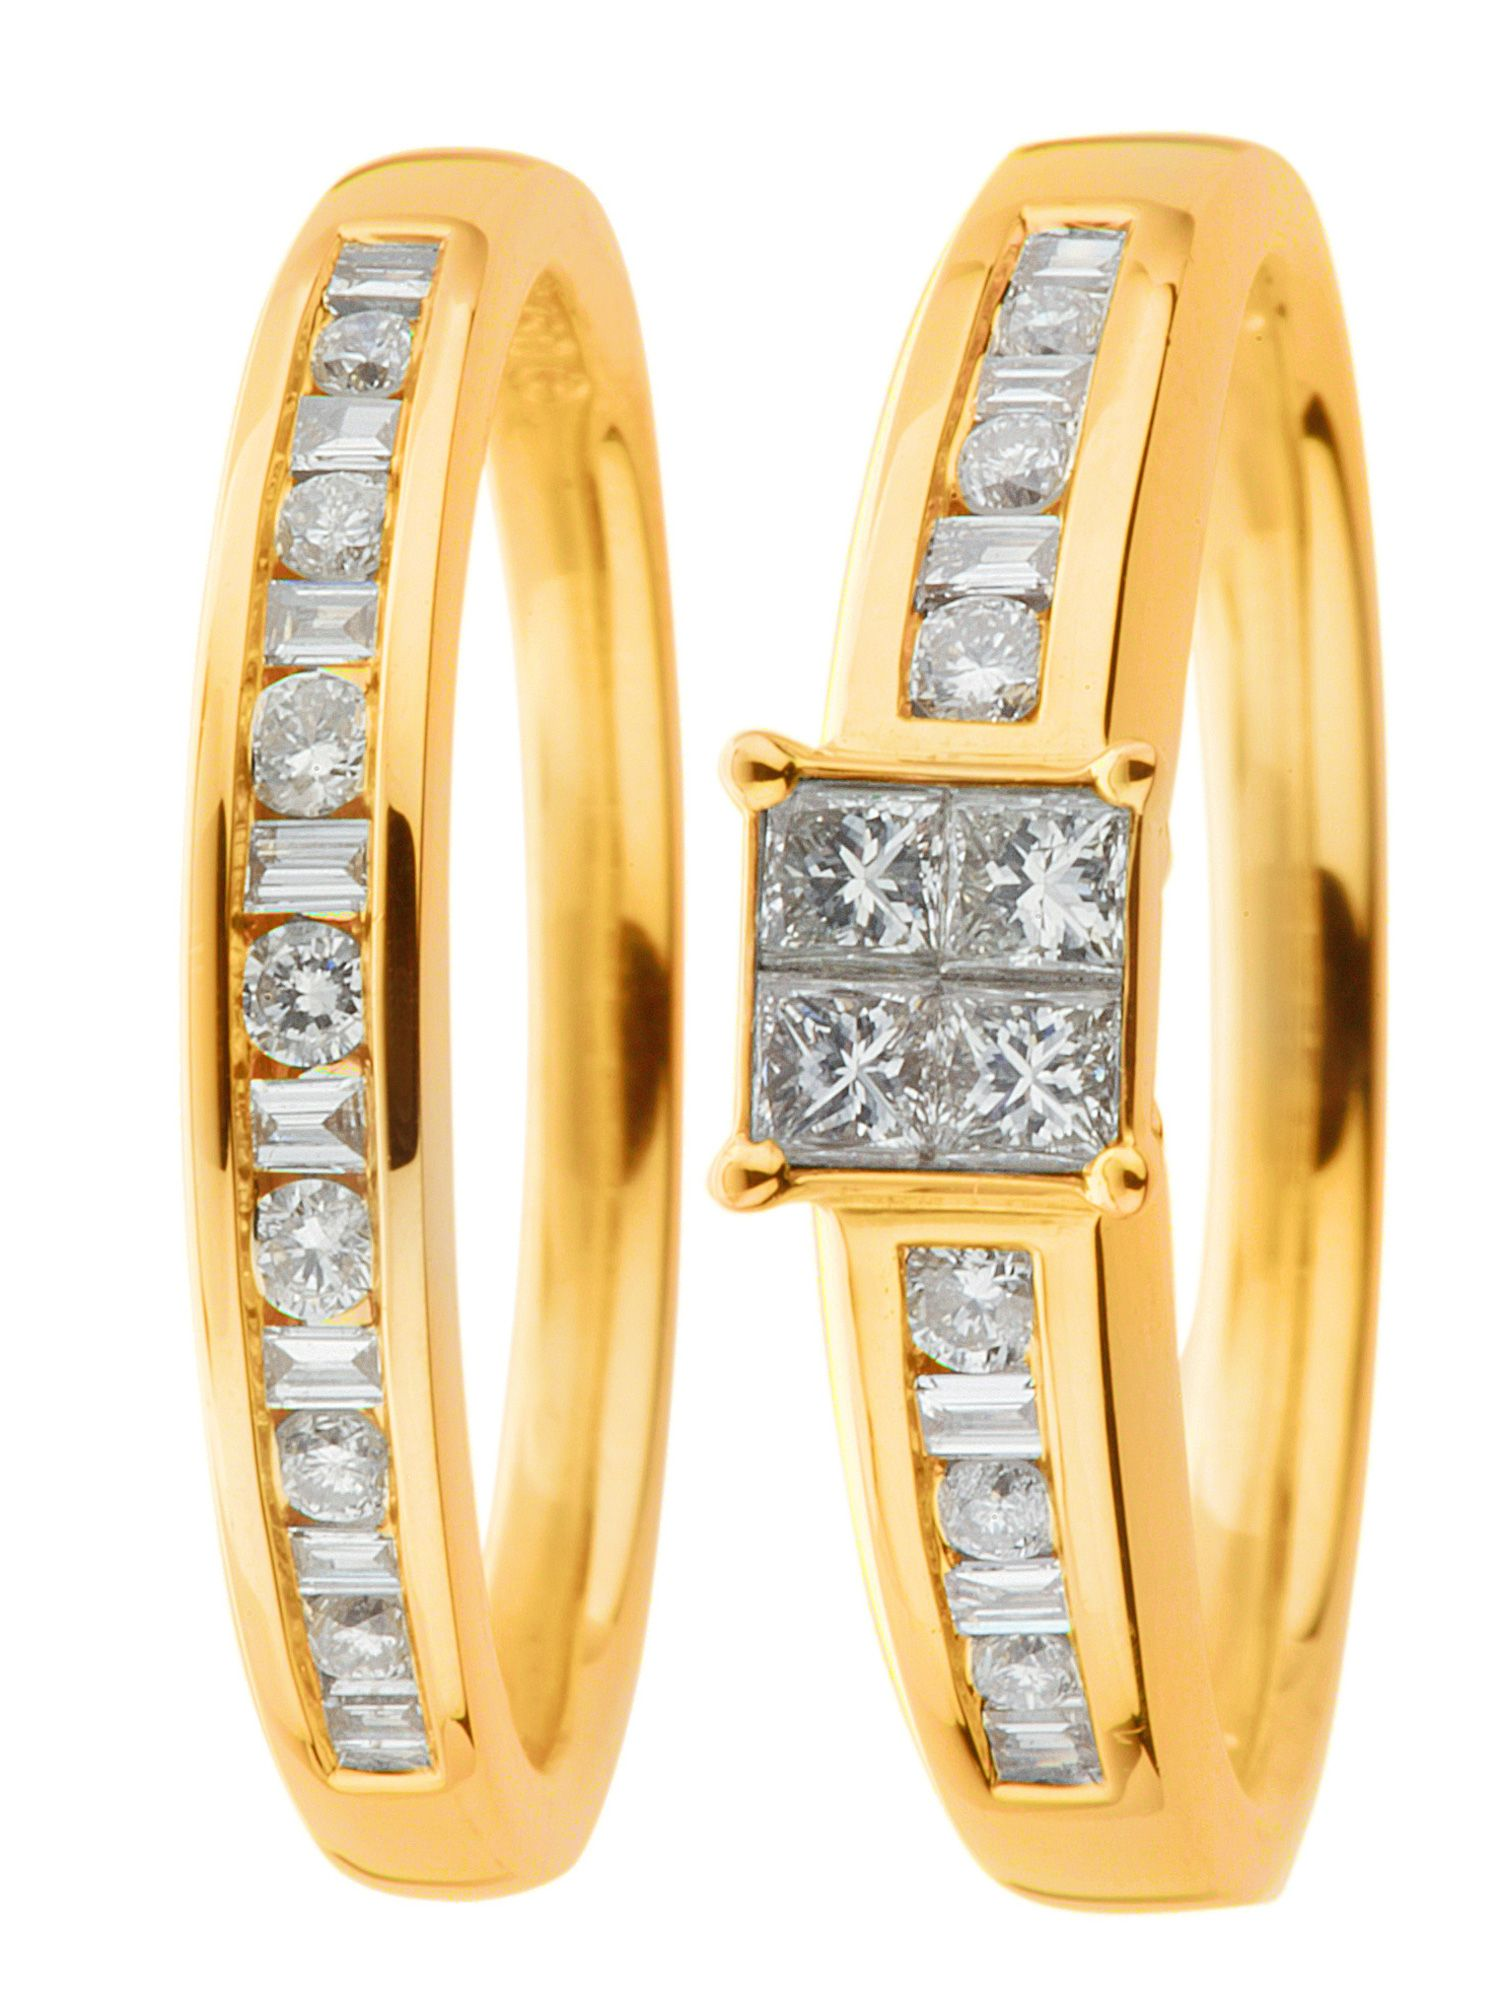 18ct gold 0.33ct diamond wedding set